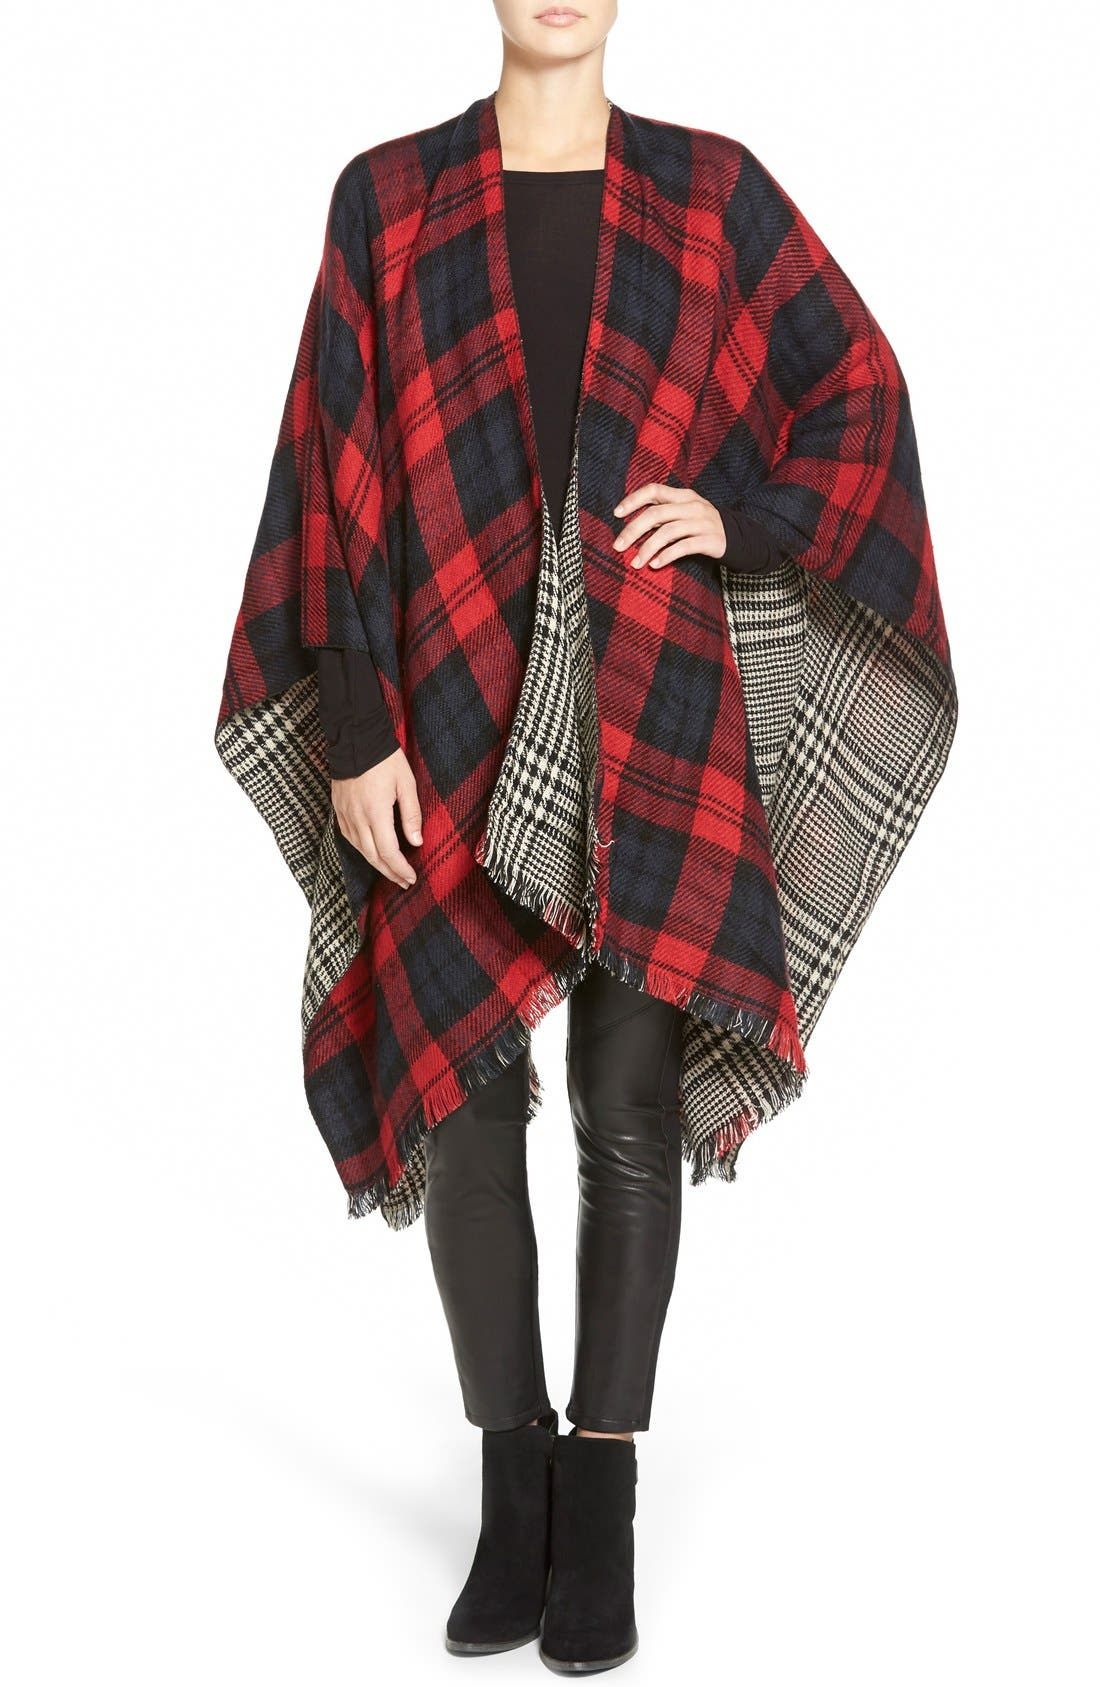 Alternate Image 1 Selected - Modena 'Double Plaid' Reversible Cape